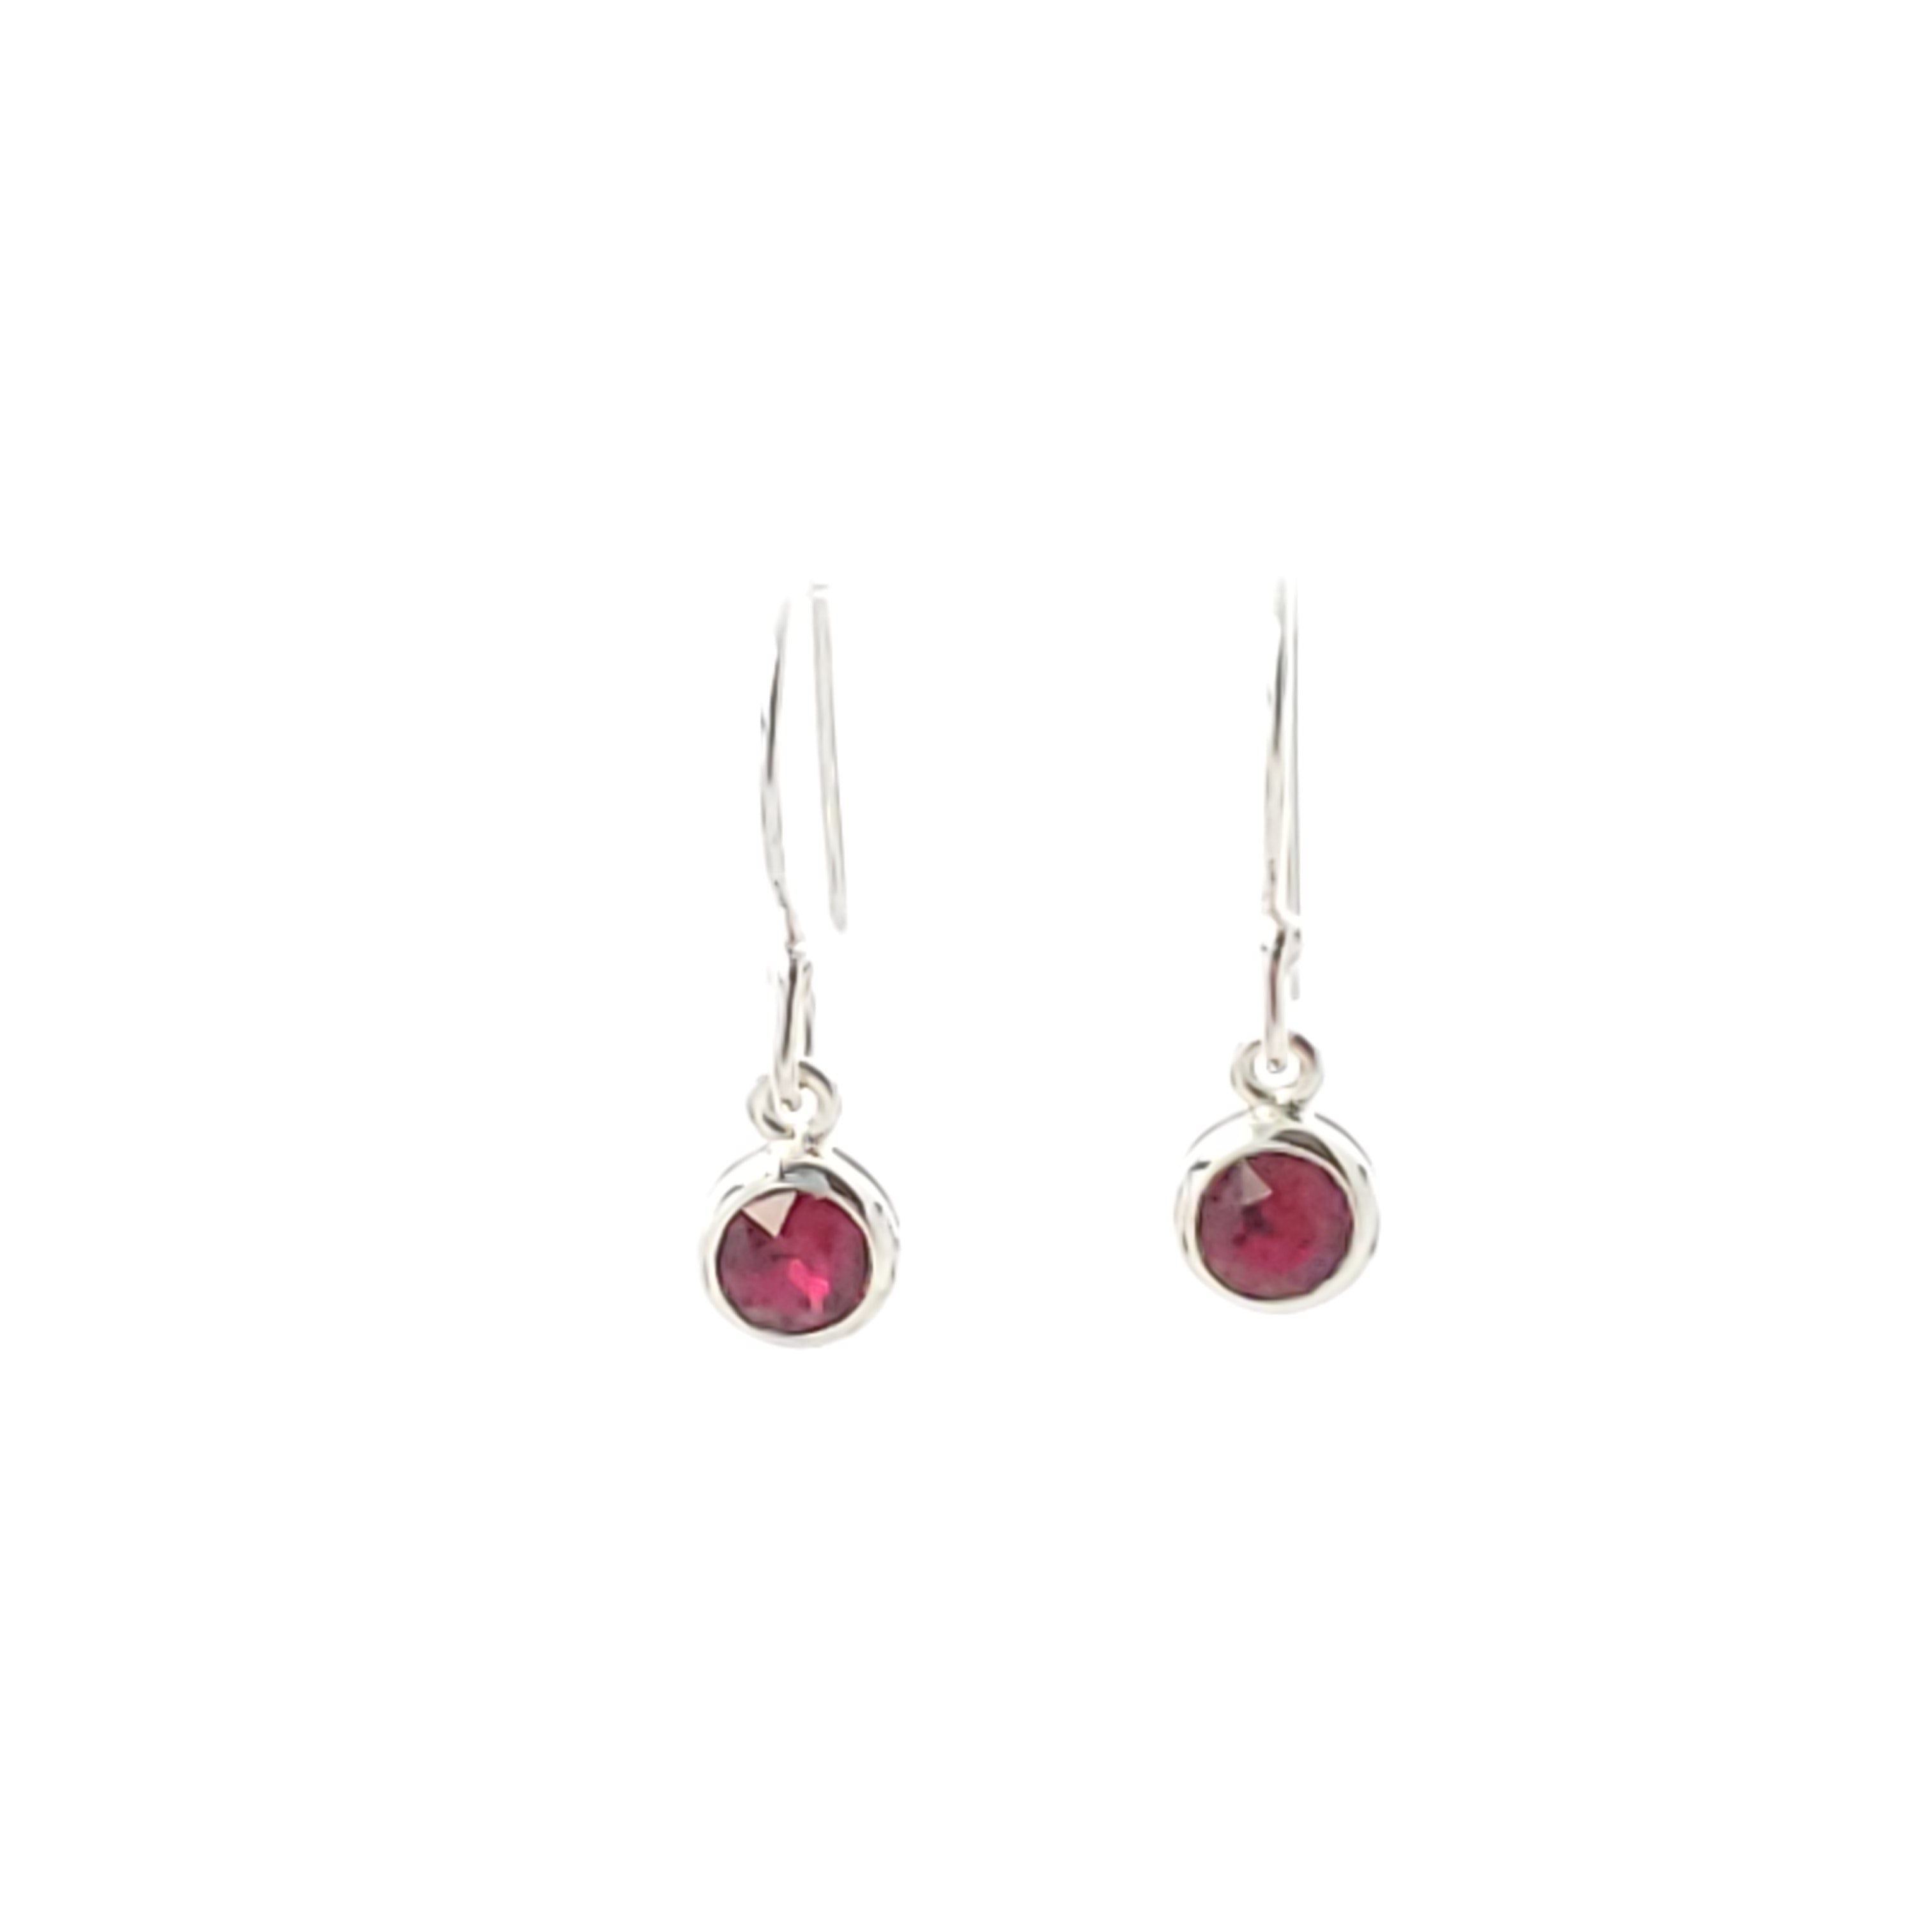 Swarovski crystal birthstone sterling silver earrings